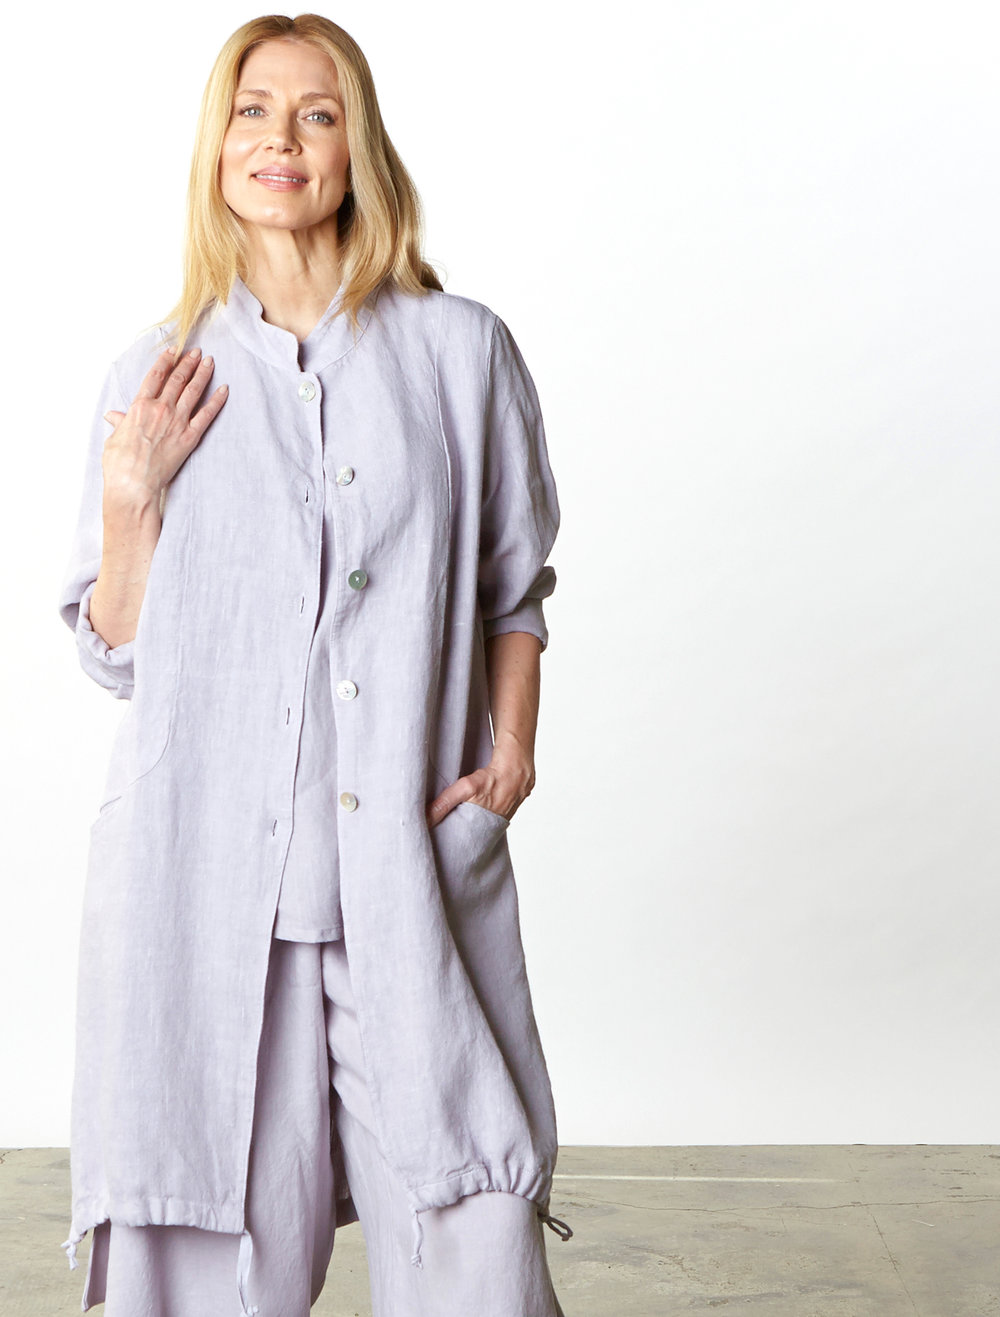 Emerson Jacket in Taro Heavy Linen, Long Trapeze Tank, Hamish Pant in Taro Light Linen